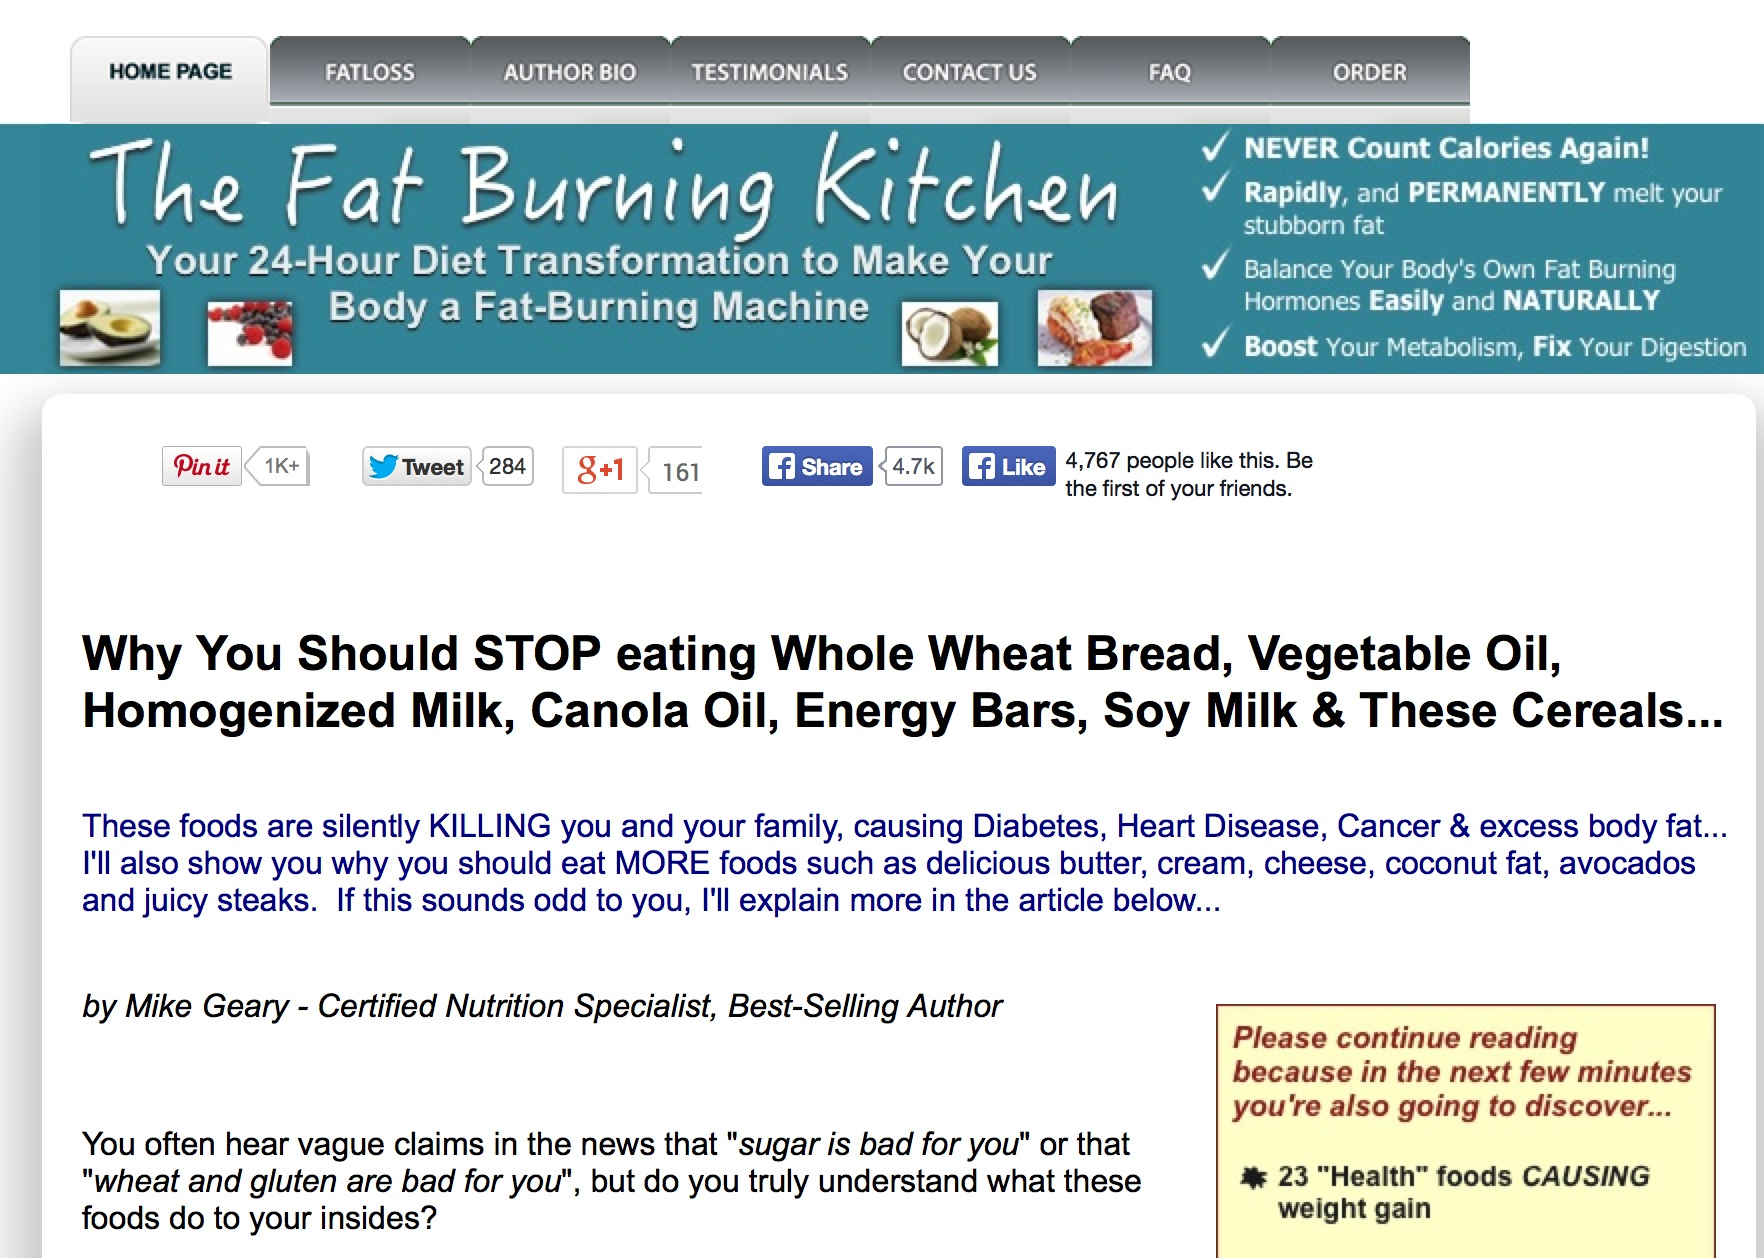 What is The Fat Burning Kitchen?